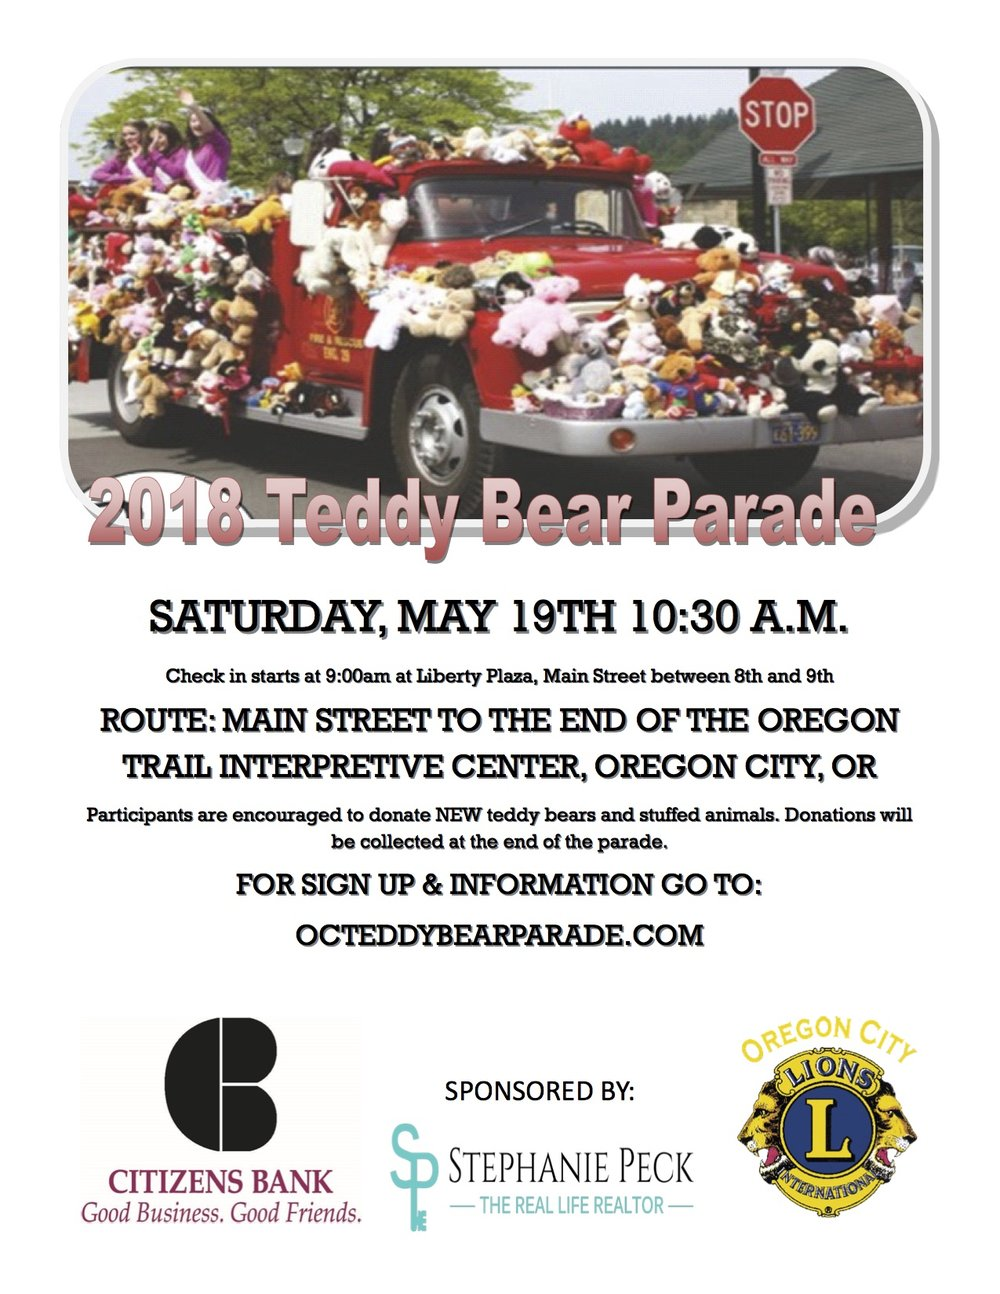 2018 Teddy Bear Parade Flyer copy.jpg